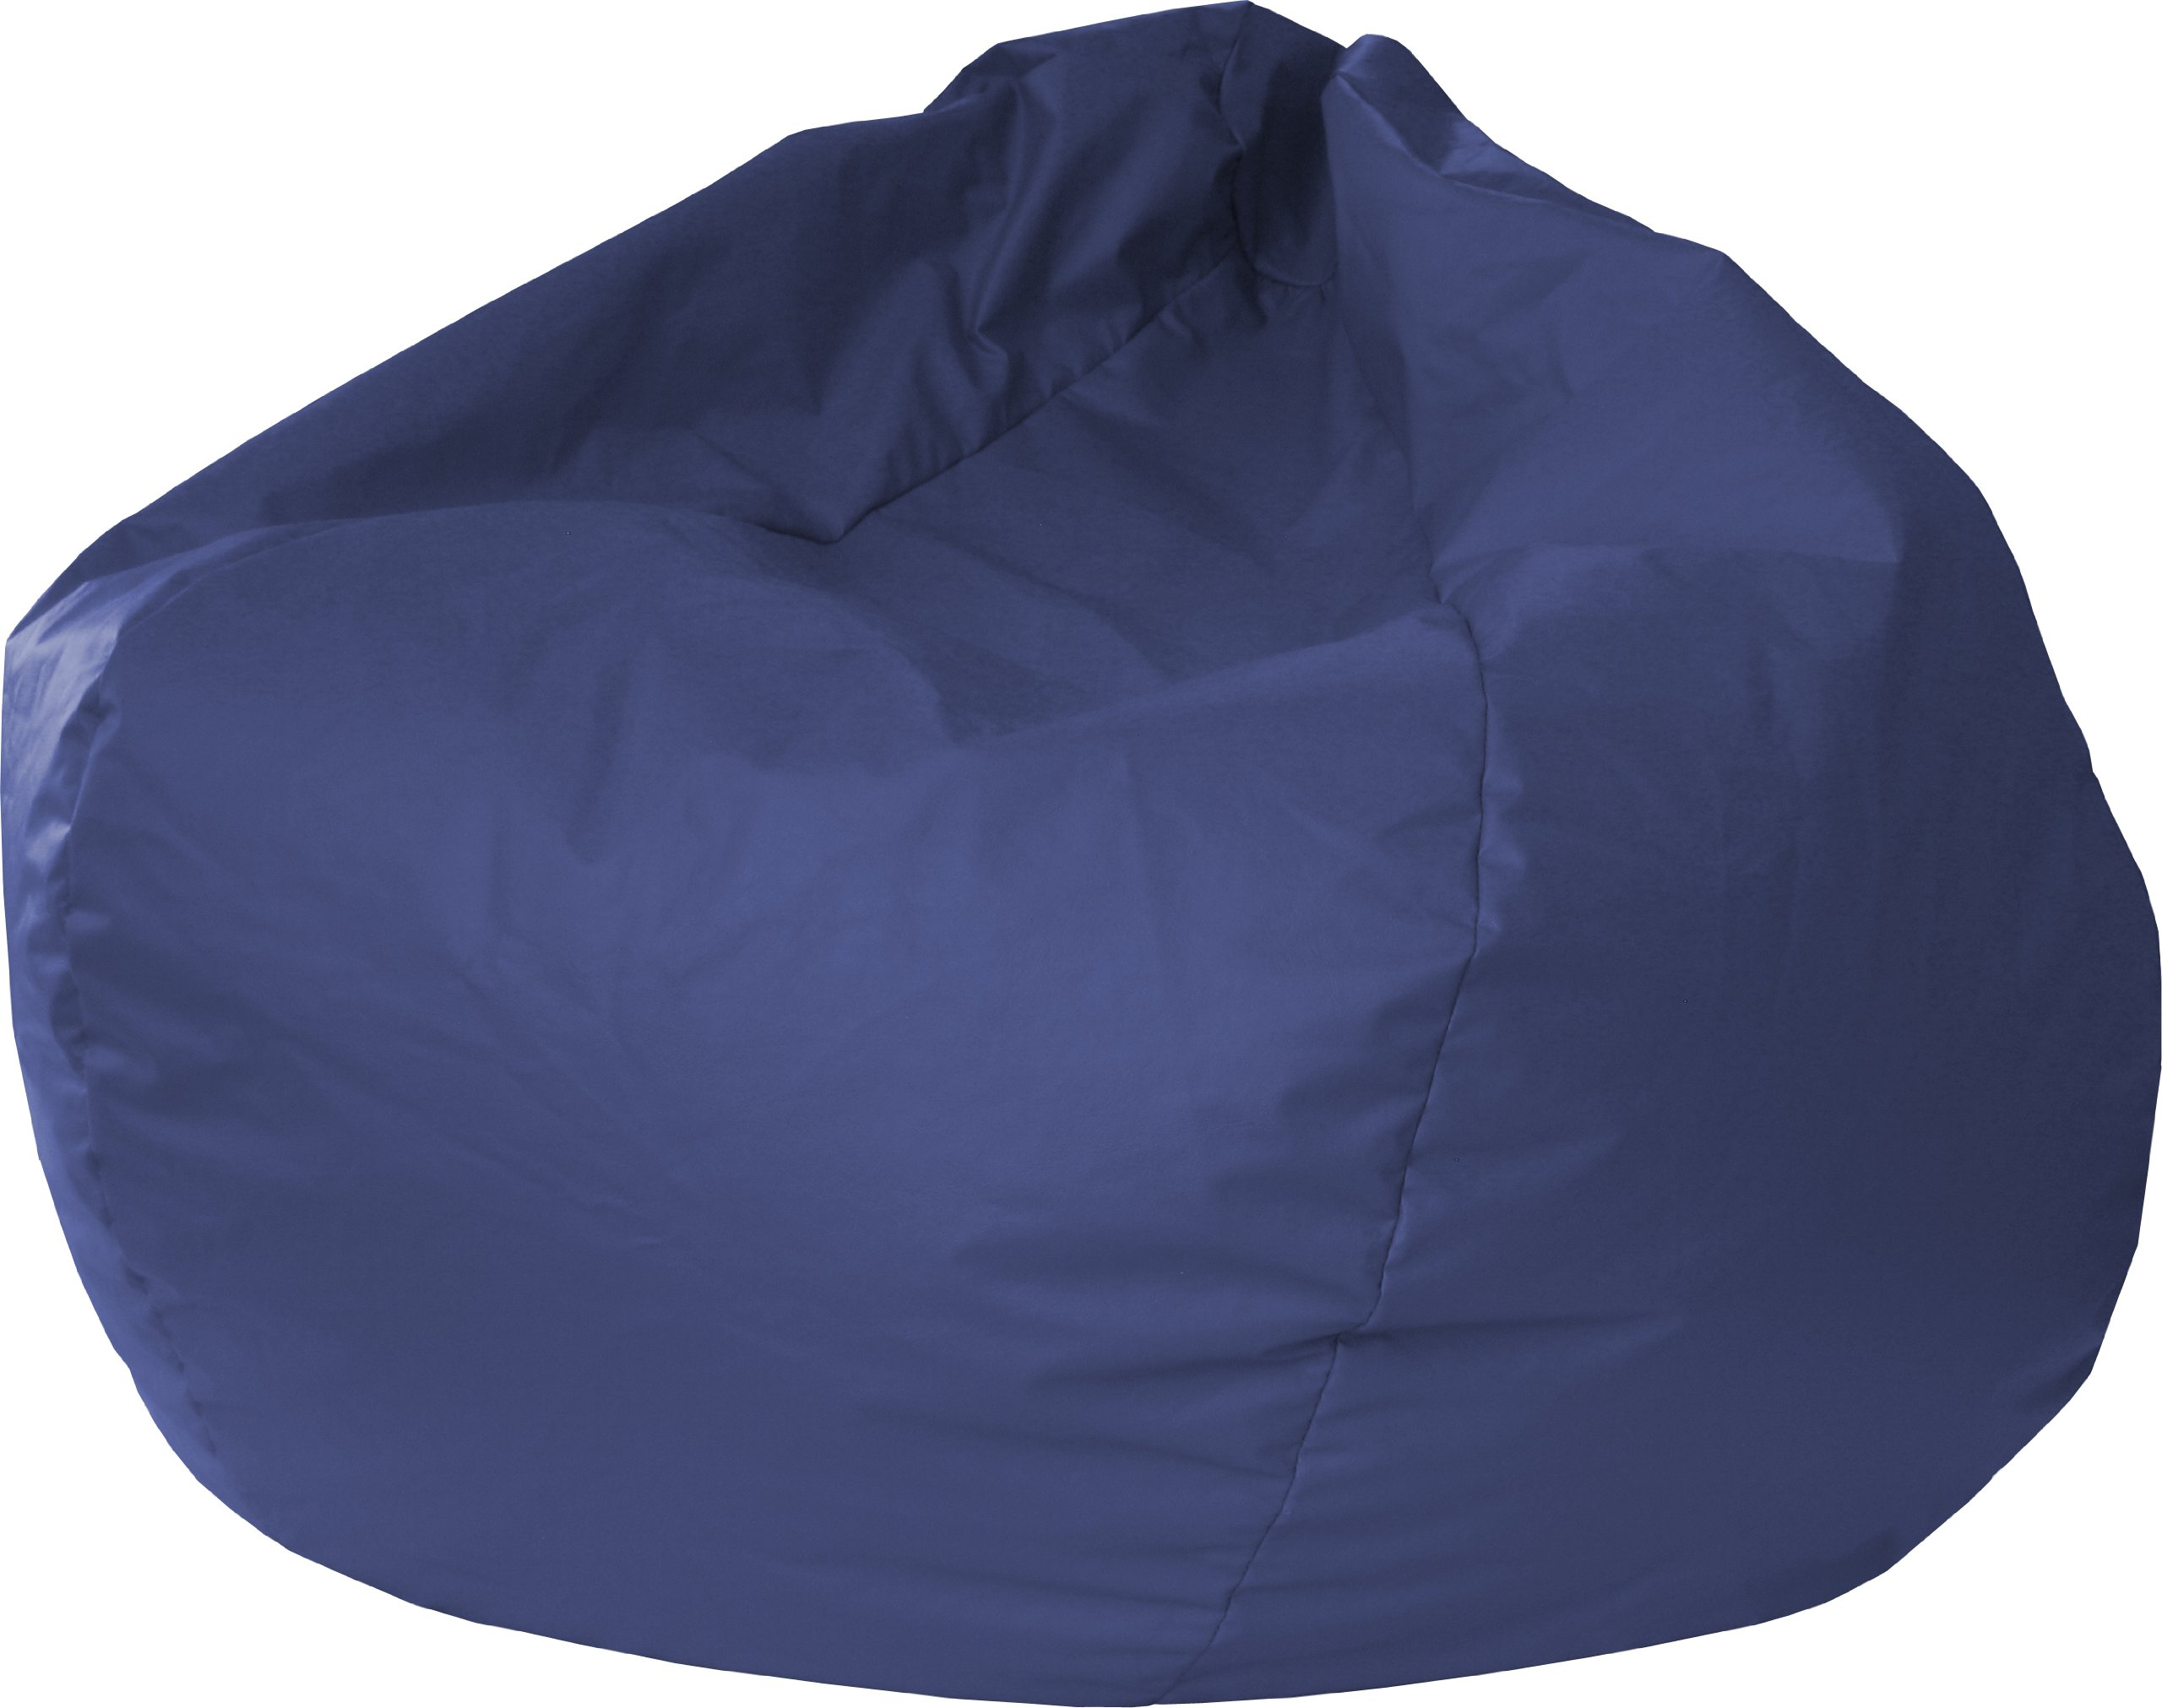 Gold Medal Bean Bags 30014046824 XX-Large Leather Look Bean Bag, Navy